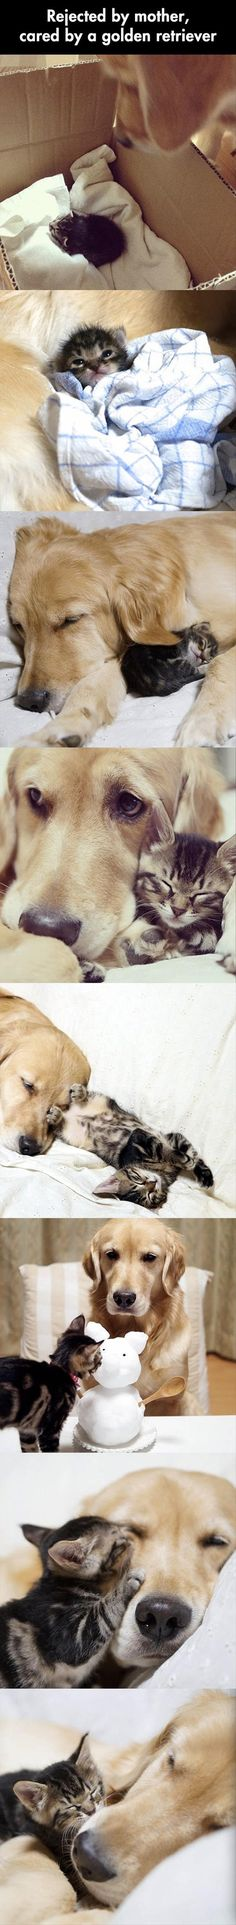 Golden Retriever and a kitten.